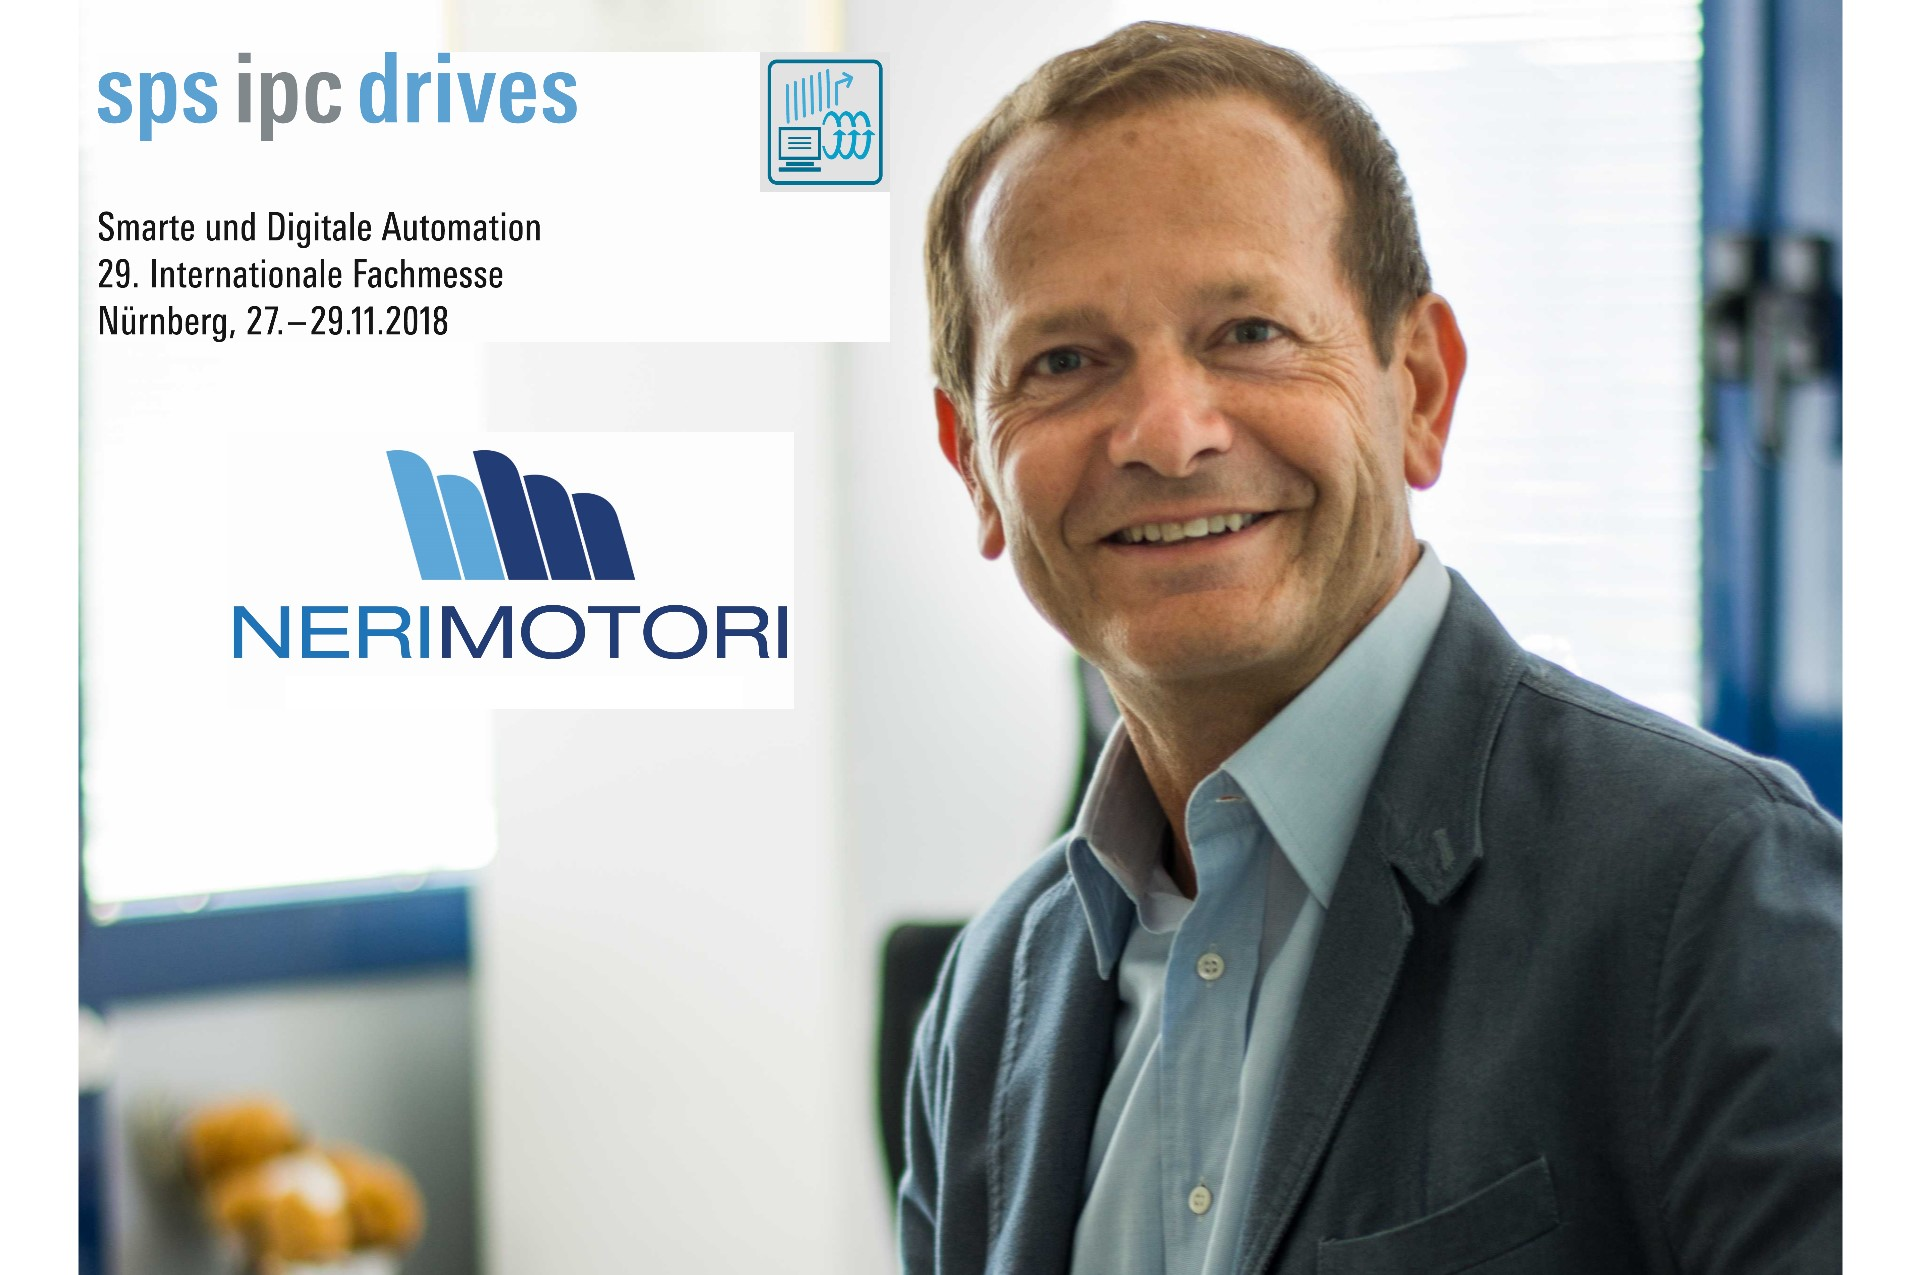 Neri Motori at SPS IPC Drives, Nuremberg